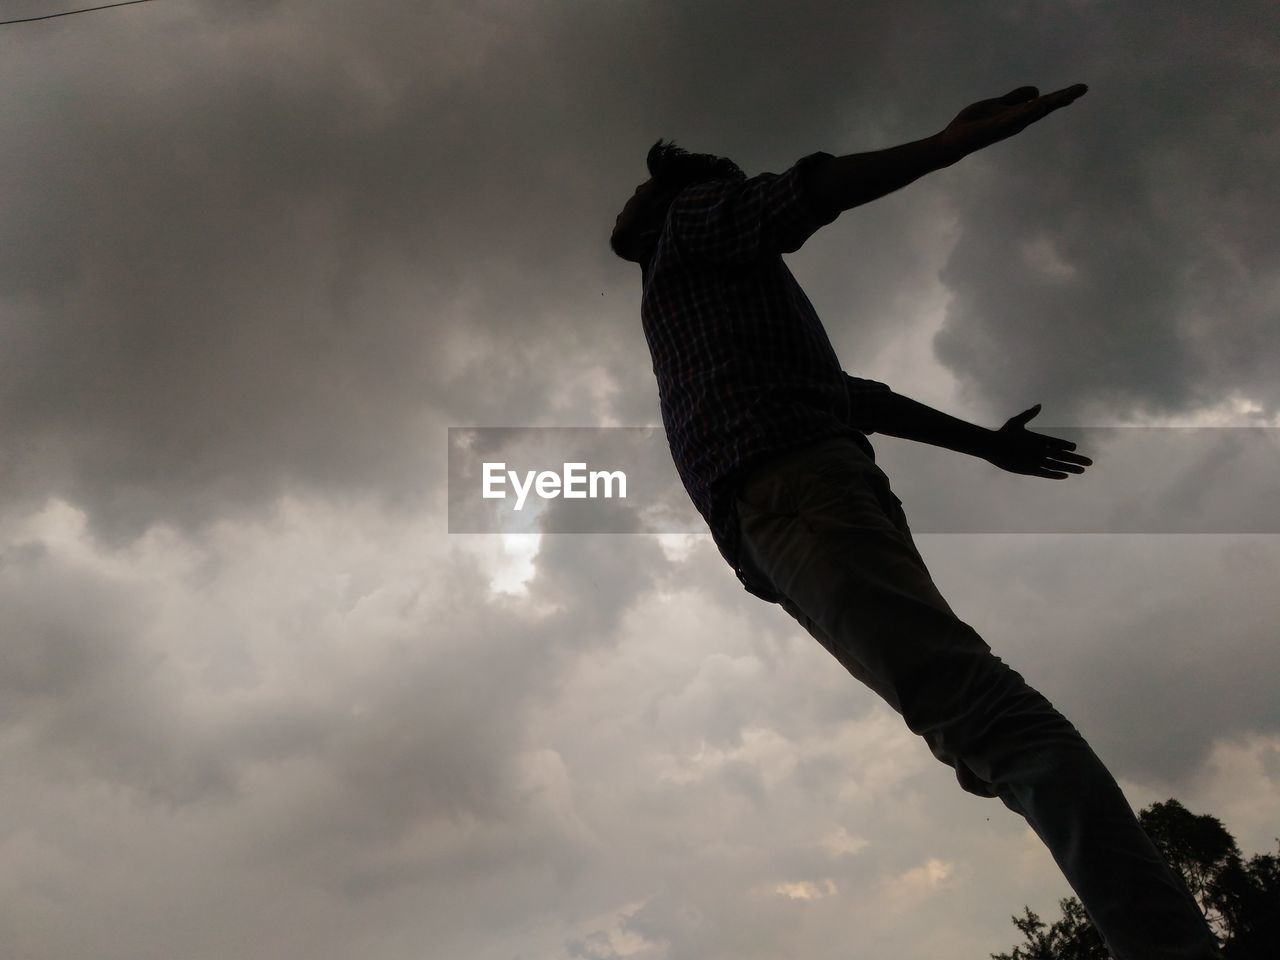 Low Angle View Of Man With Arms Outstretched Against Cloudy Sky